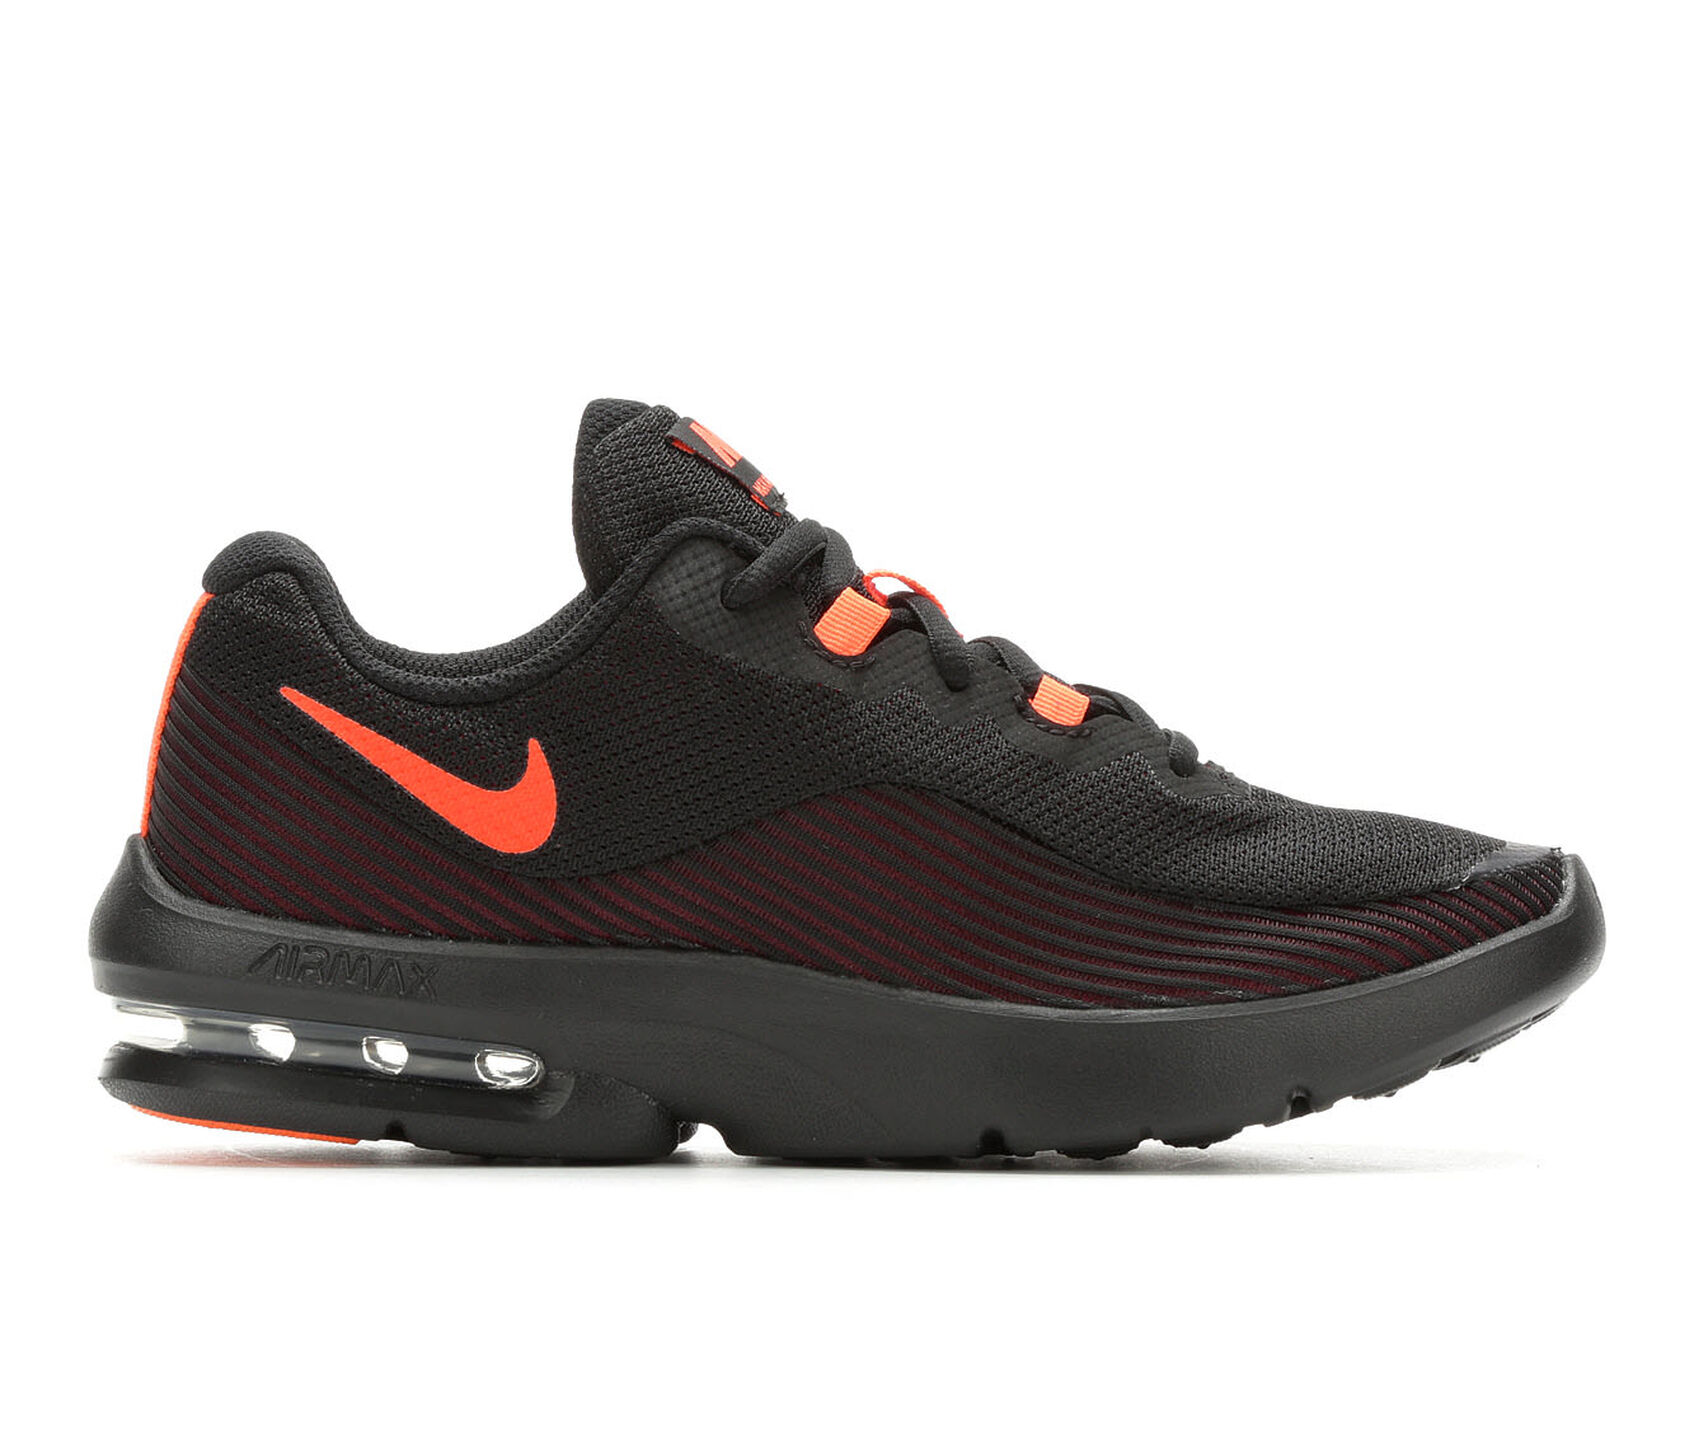 dcf58d2928 Boys' Nike Big Kid Air Max Advantage 2 Running Shoes | Shoe Carnival